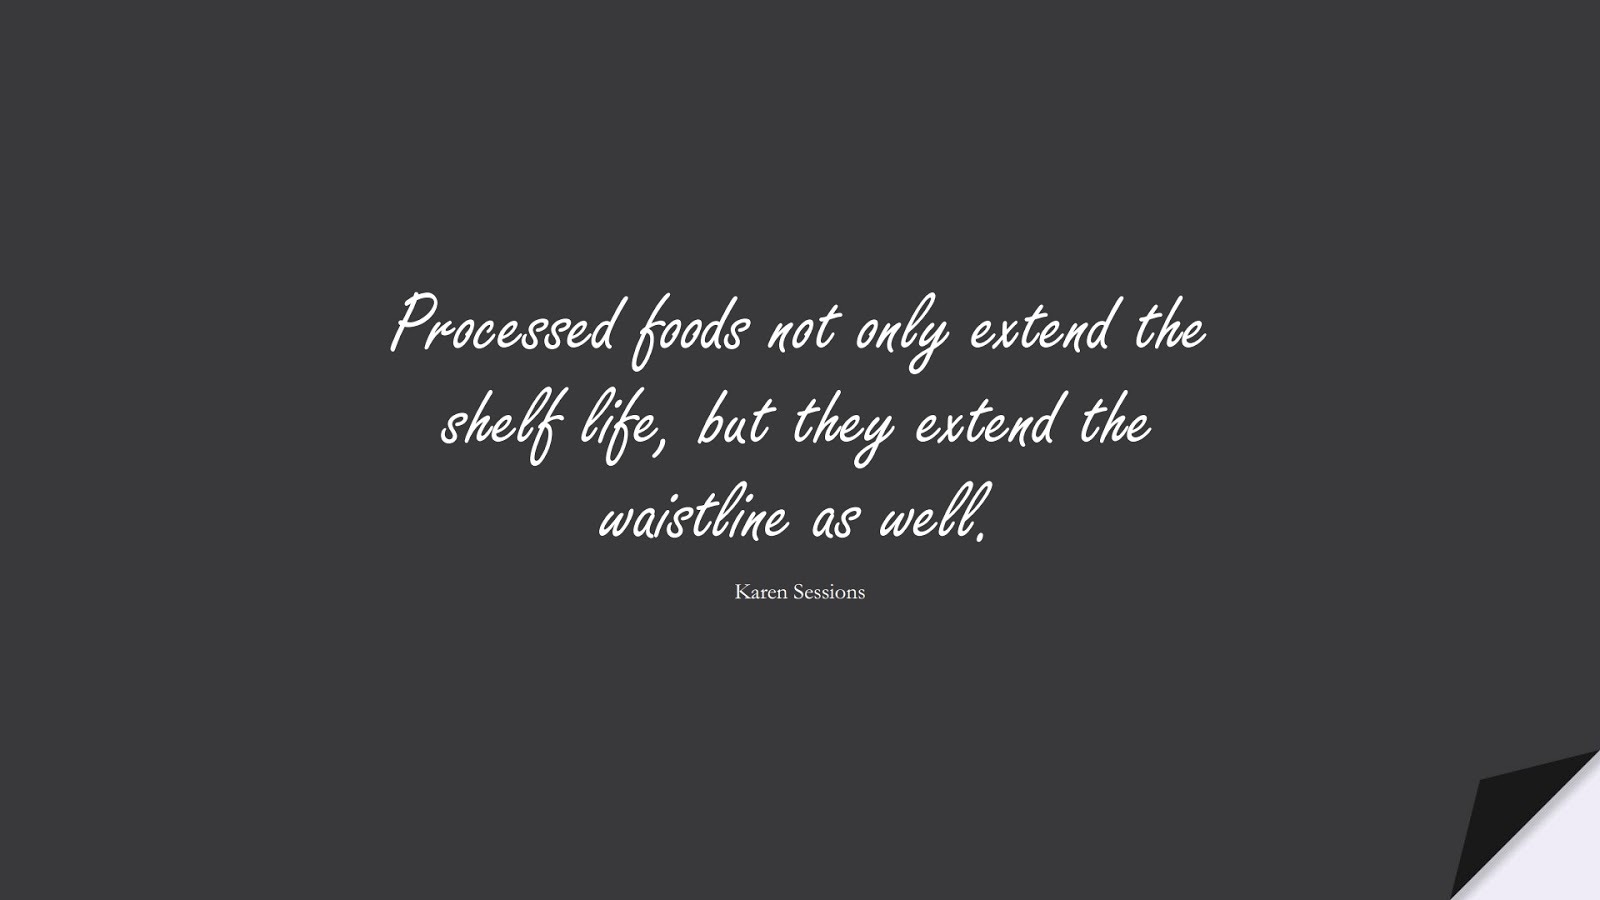 Processed foods not only extend the shelf life, but they extend the waistline as well. (Karen Sessions);  #HealthQuotes